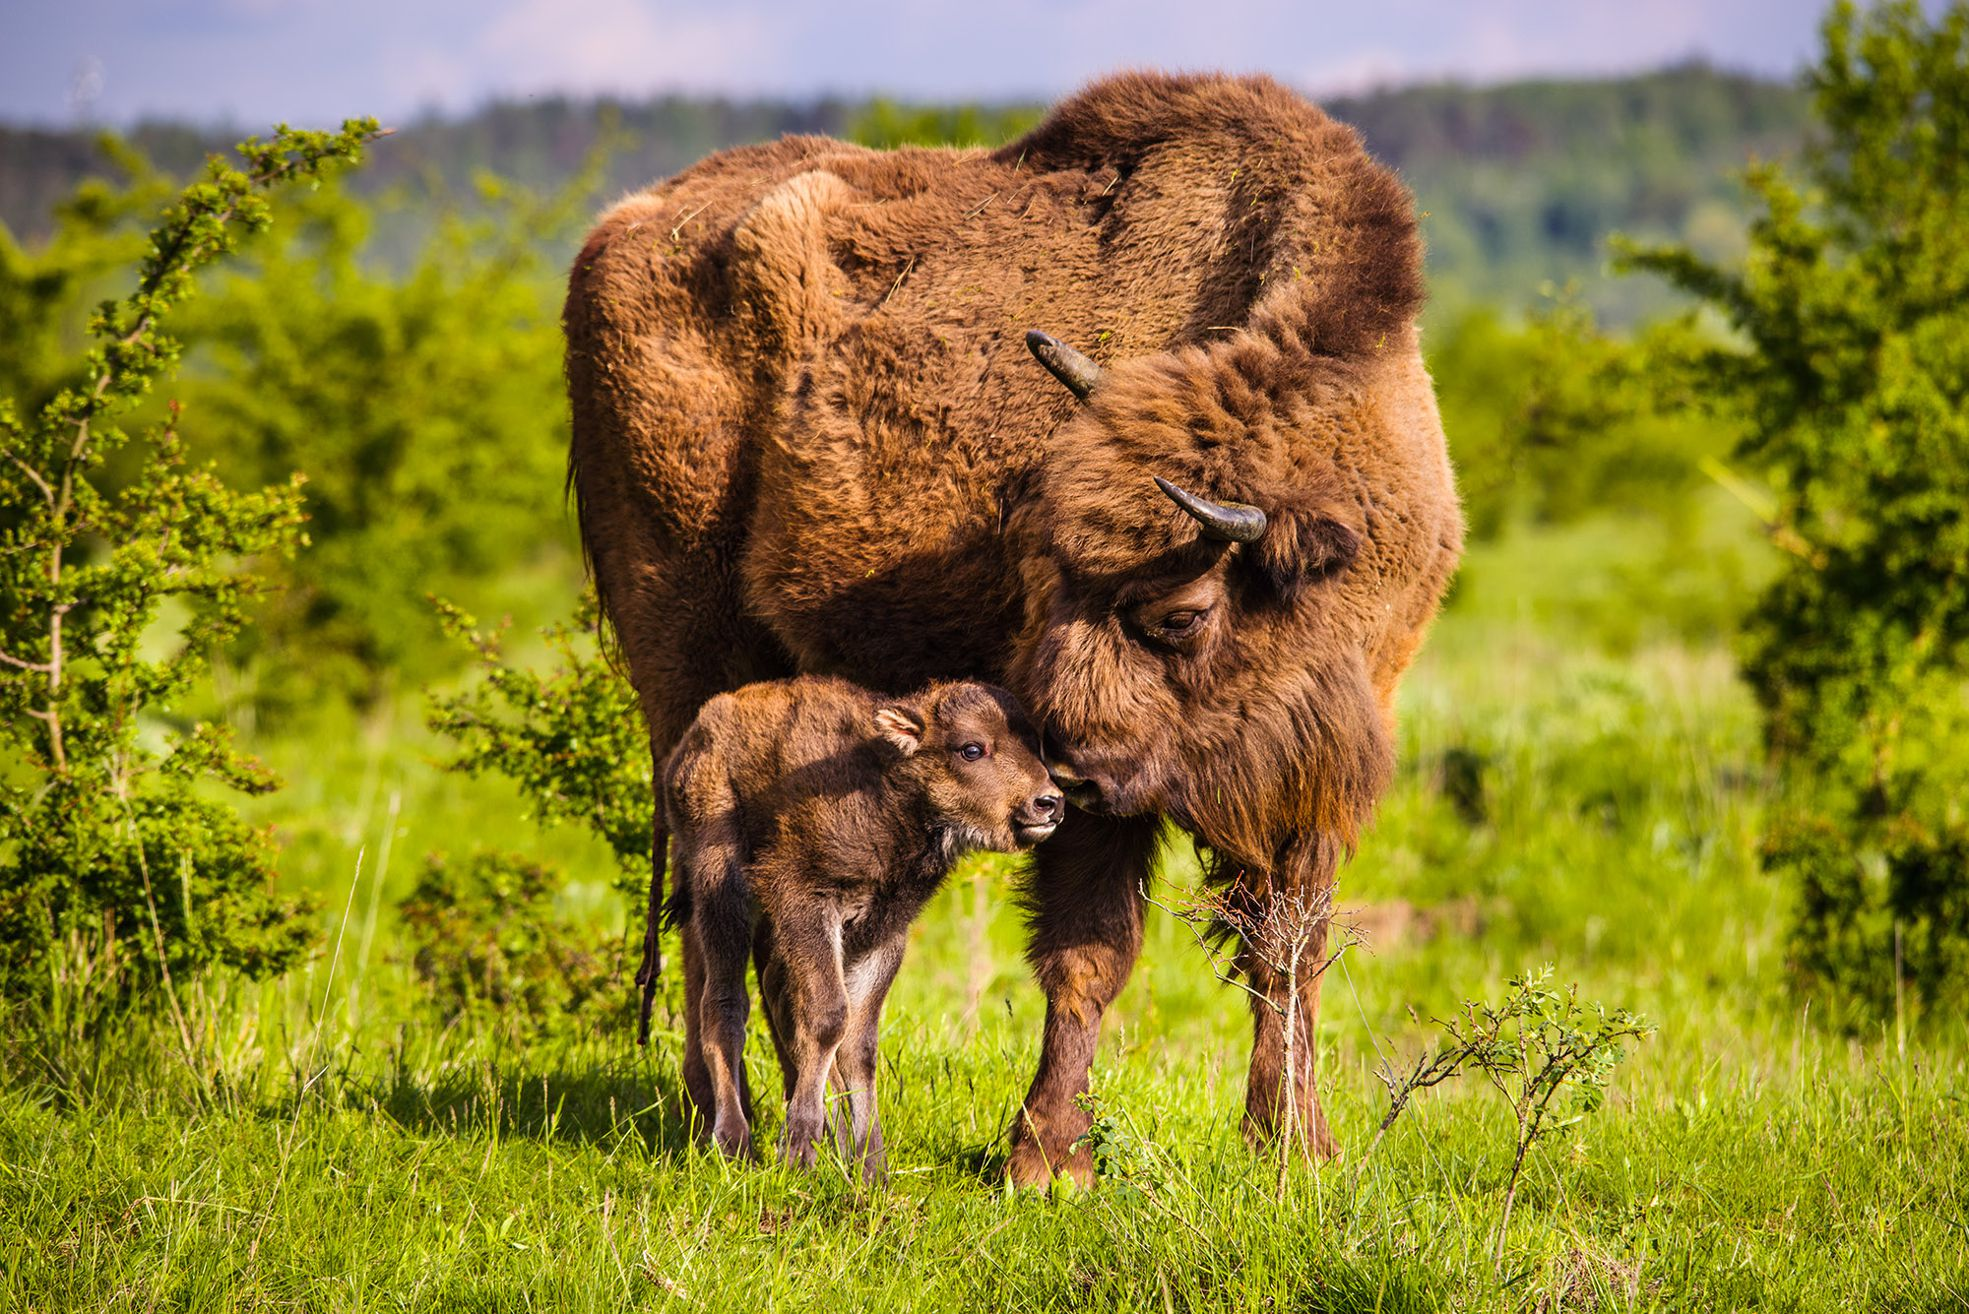 The first young wisent this year was born today in our nature reserve; male Polanin has become a father for the first time